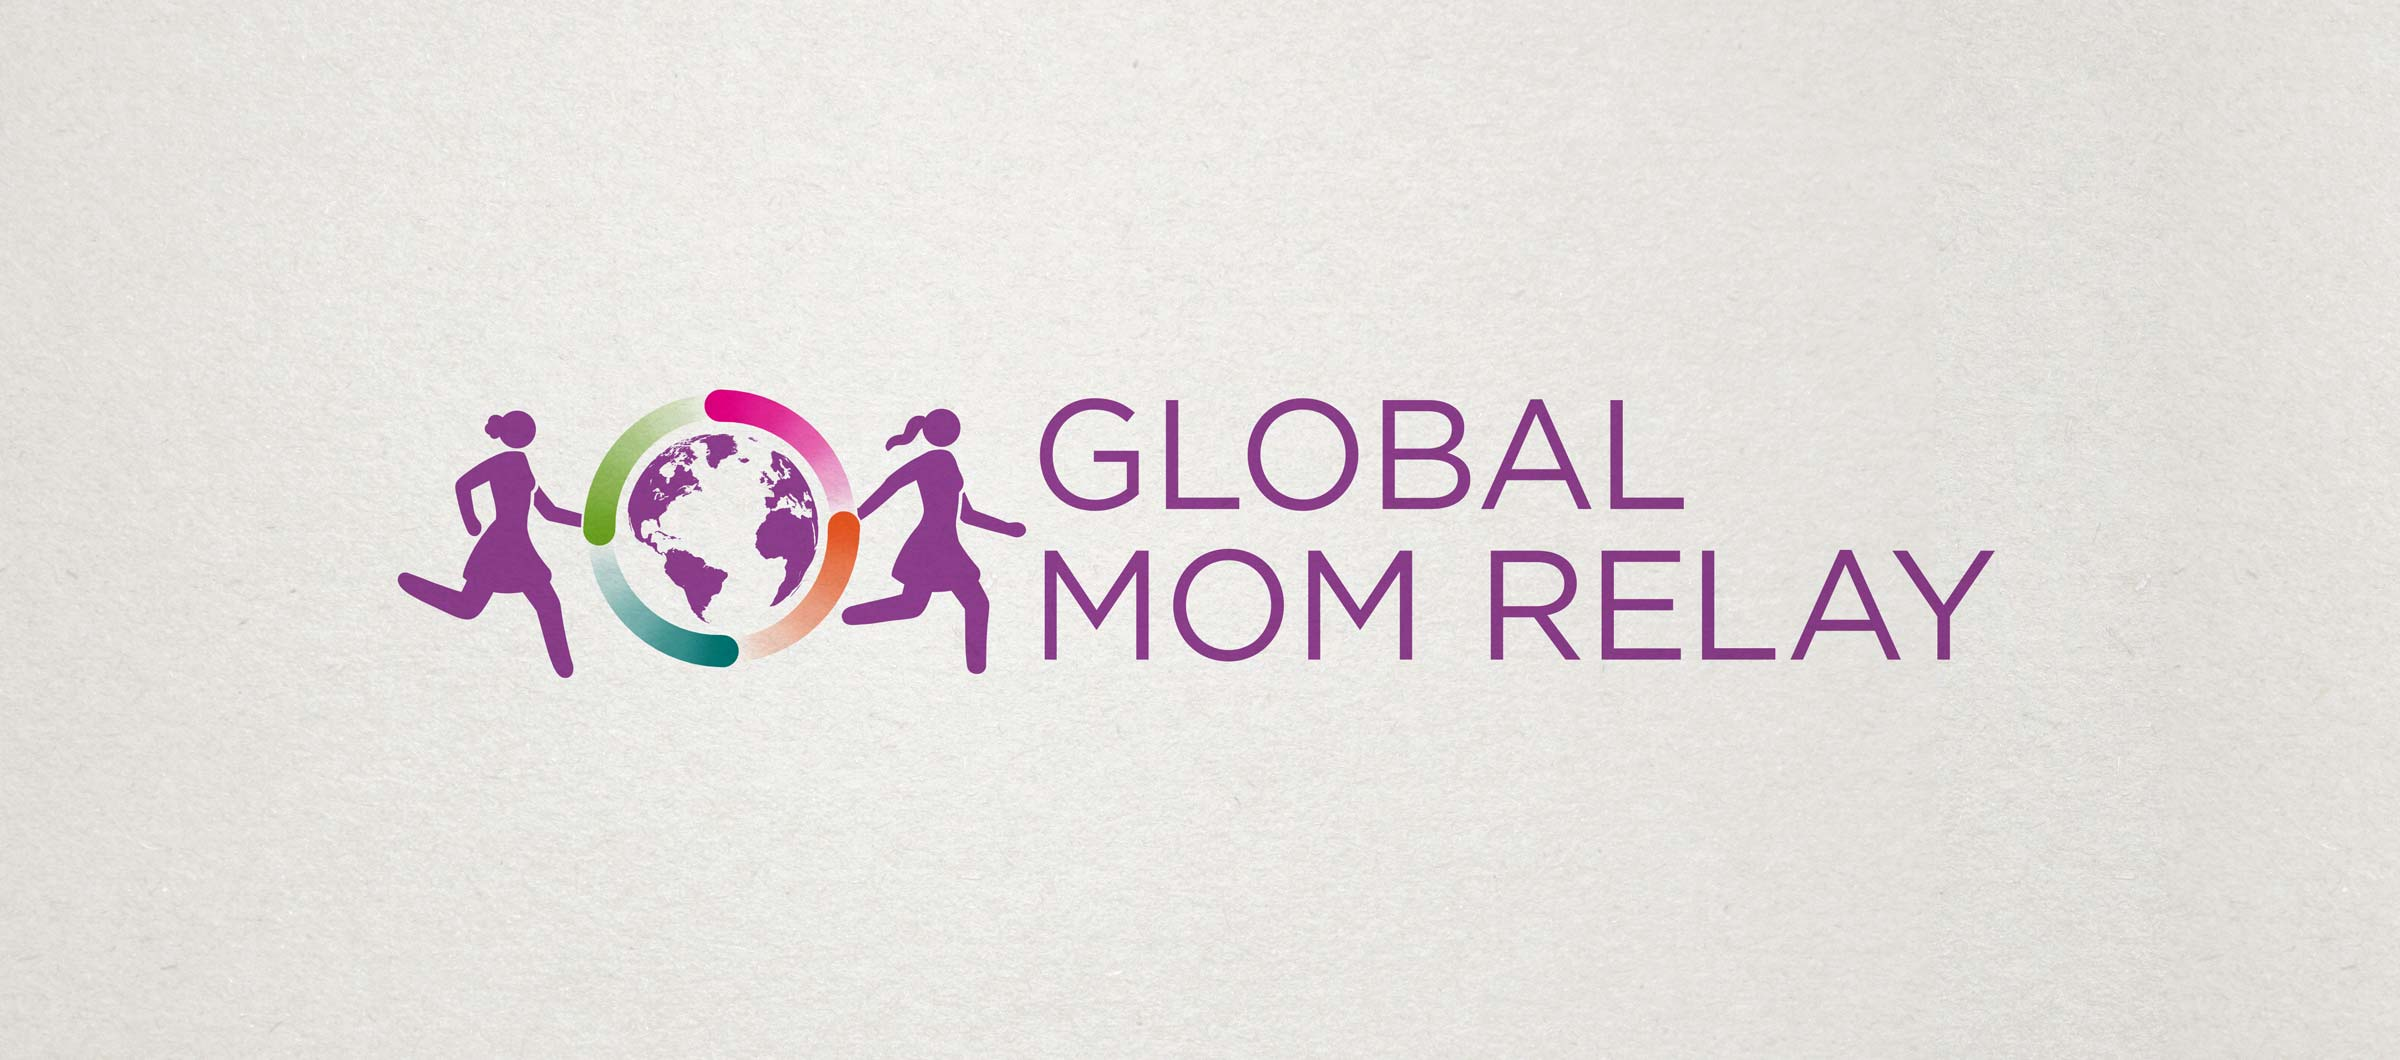 58da6f4d4f501c40503c4ada_global mom relay logo.jpg